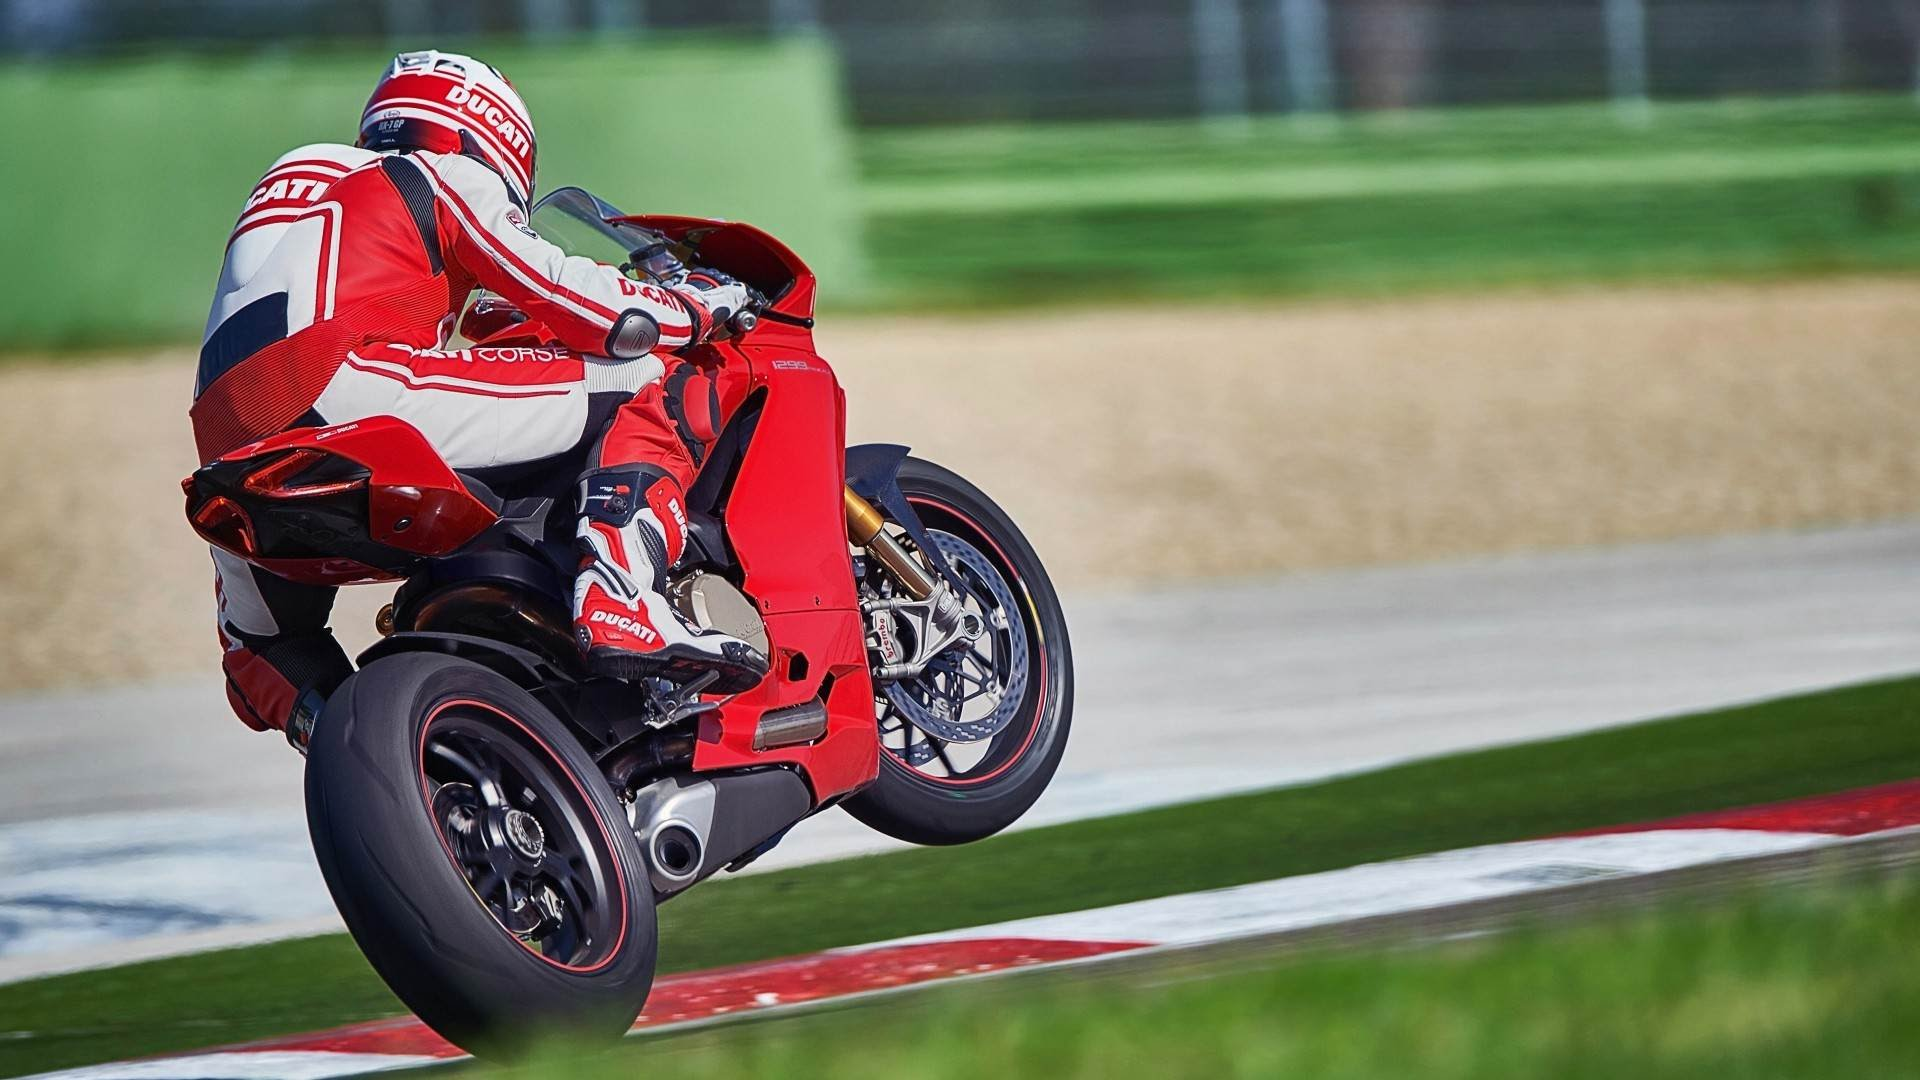 Ducati 1299 Panigale S 4k Wallpapers: Great Ducati 1299 Panigale S Wallpaper